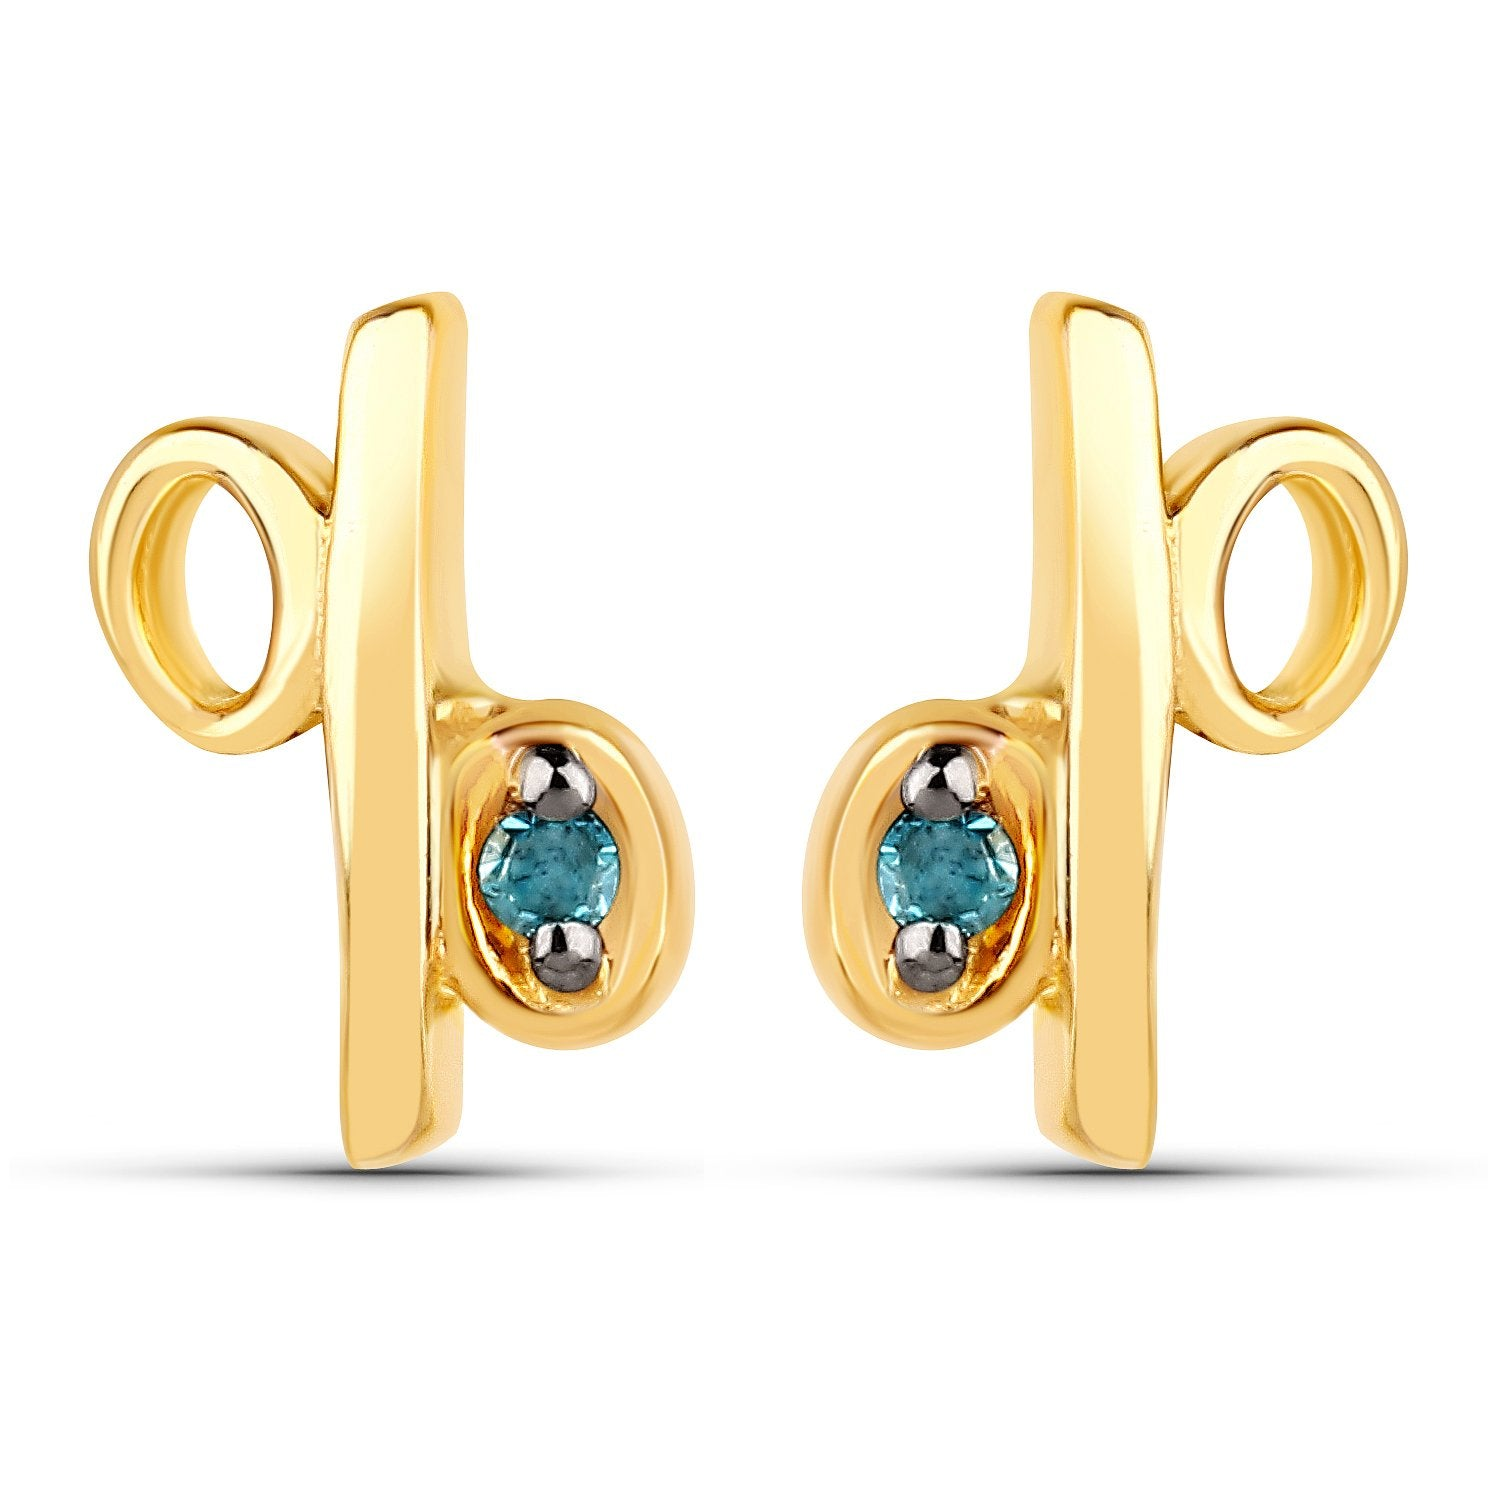 LoveHuang 0.01 Carats Genuine Blue Diamond (I-J, I2-I3) Percentage Earrings Solid .925 Sterling Silver With 18KT Yellow Gold Plating